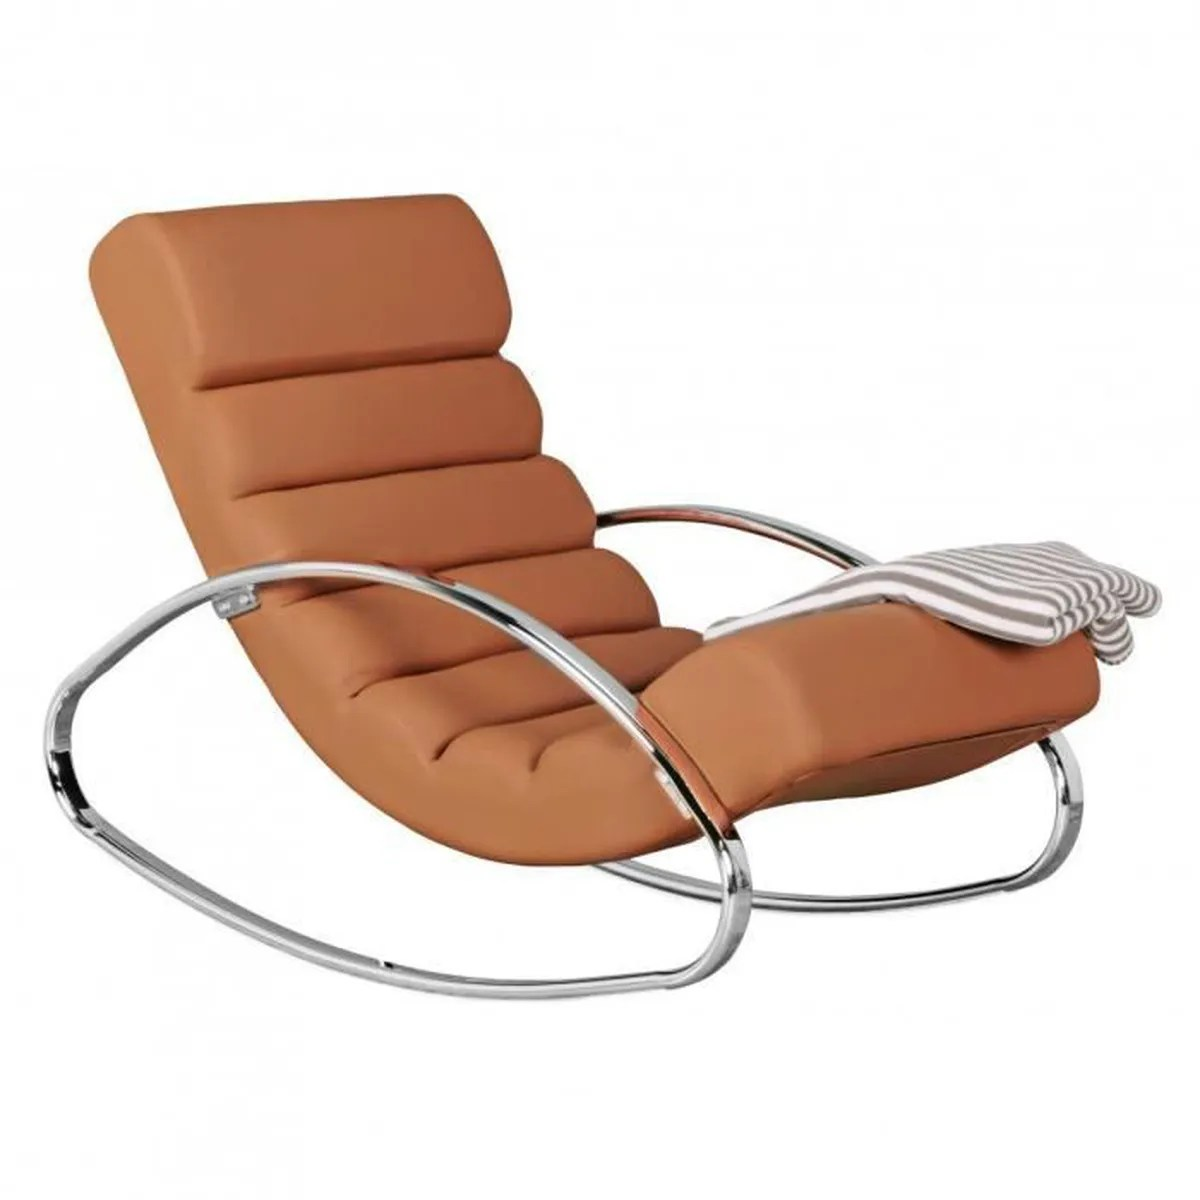 Fauteuil Inclinable Design Relax Fauteuil Inclinable Brun Relaxsessel Design Rocking Chair